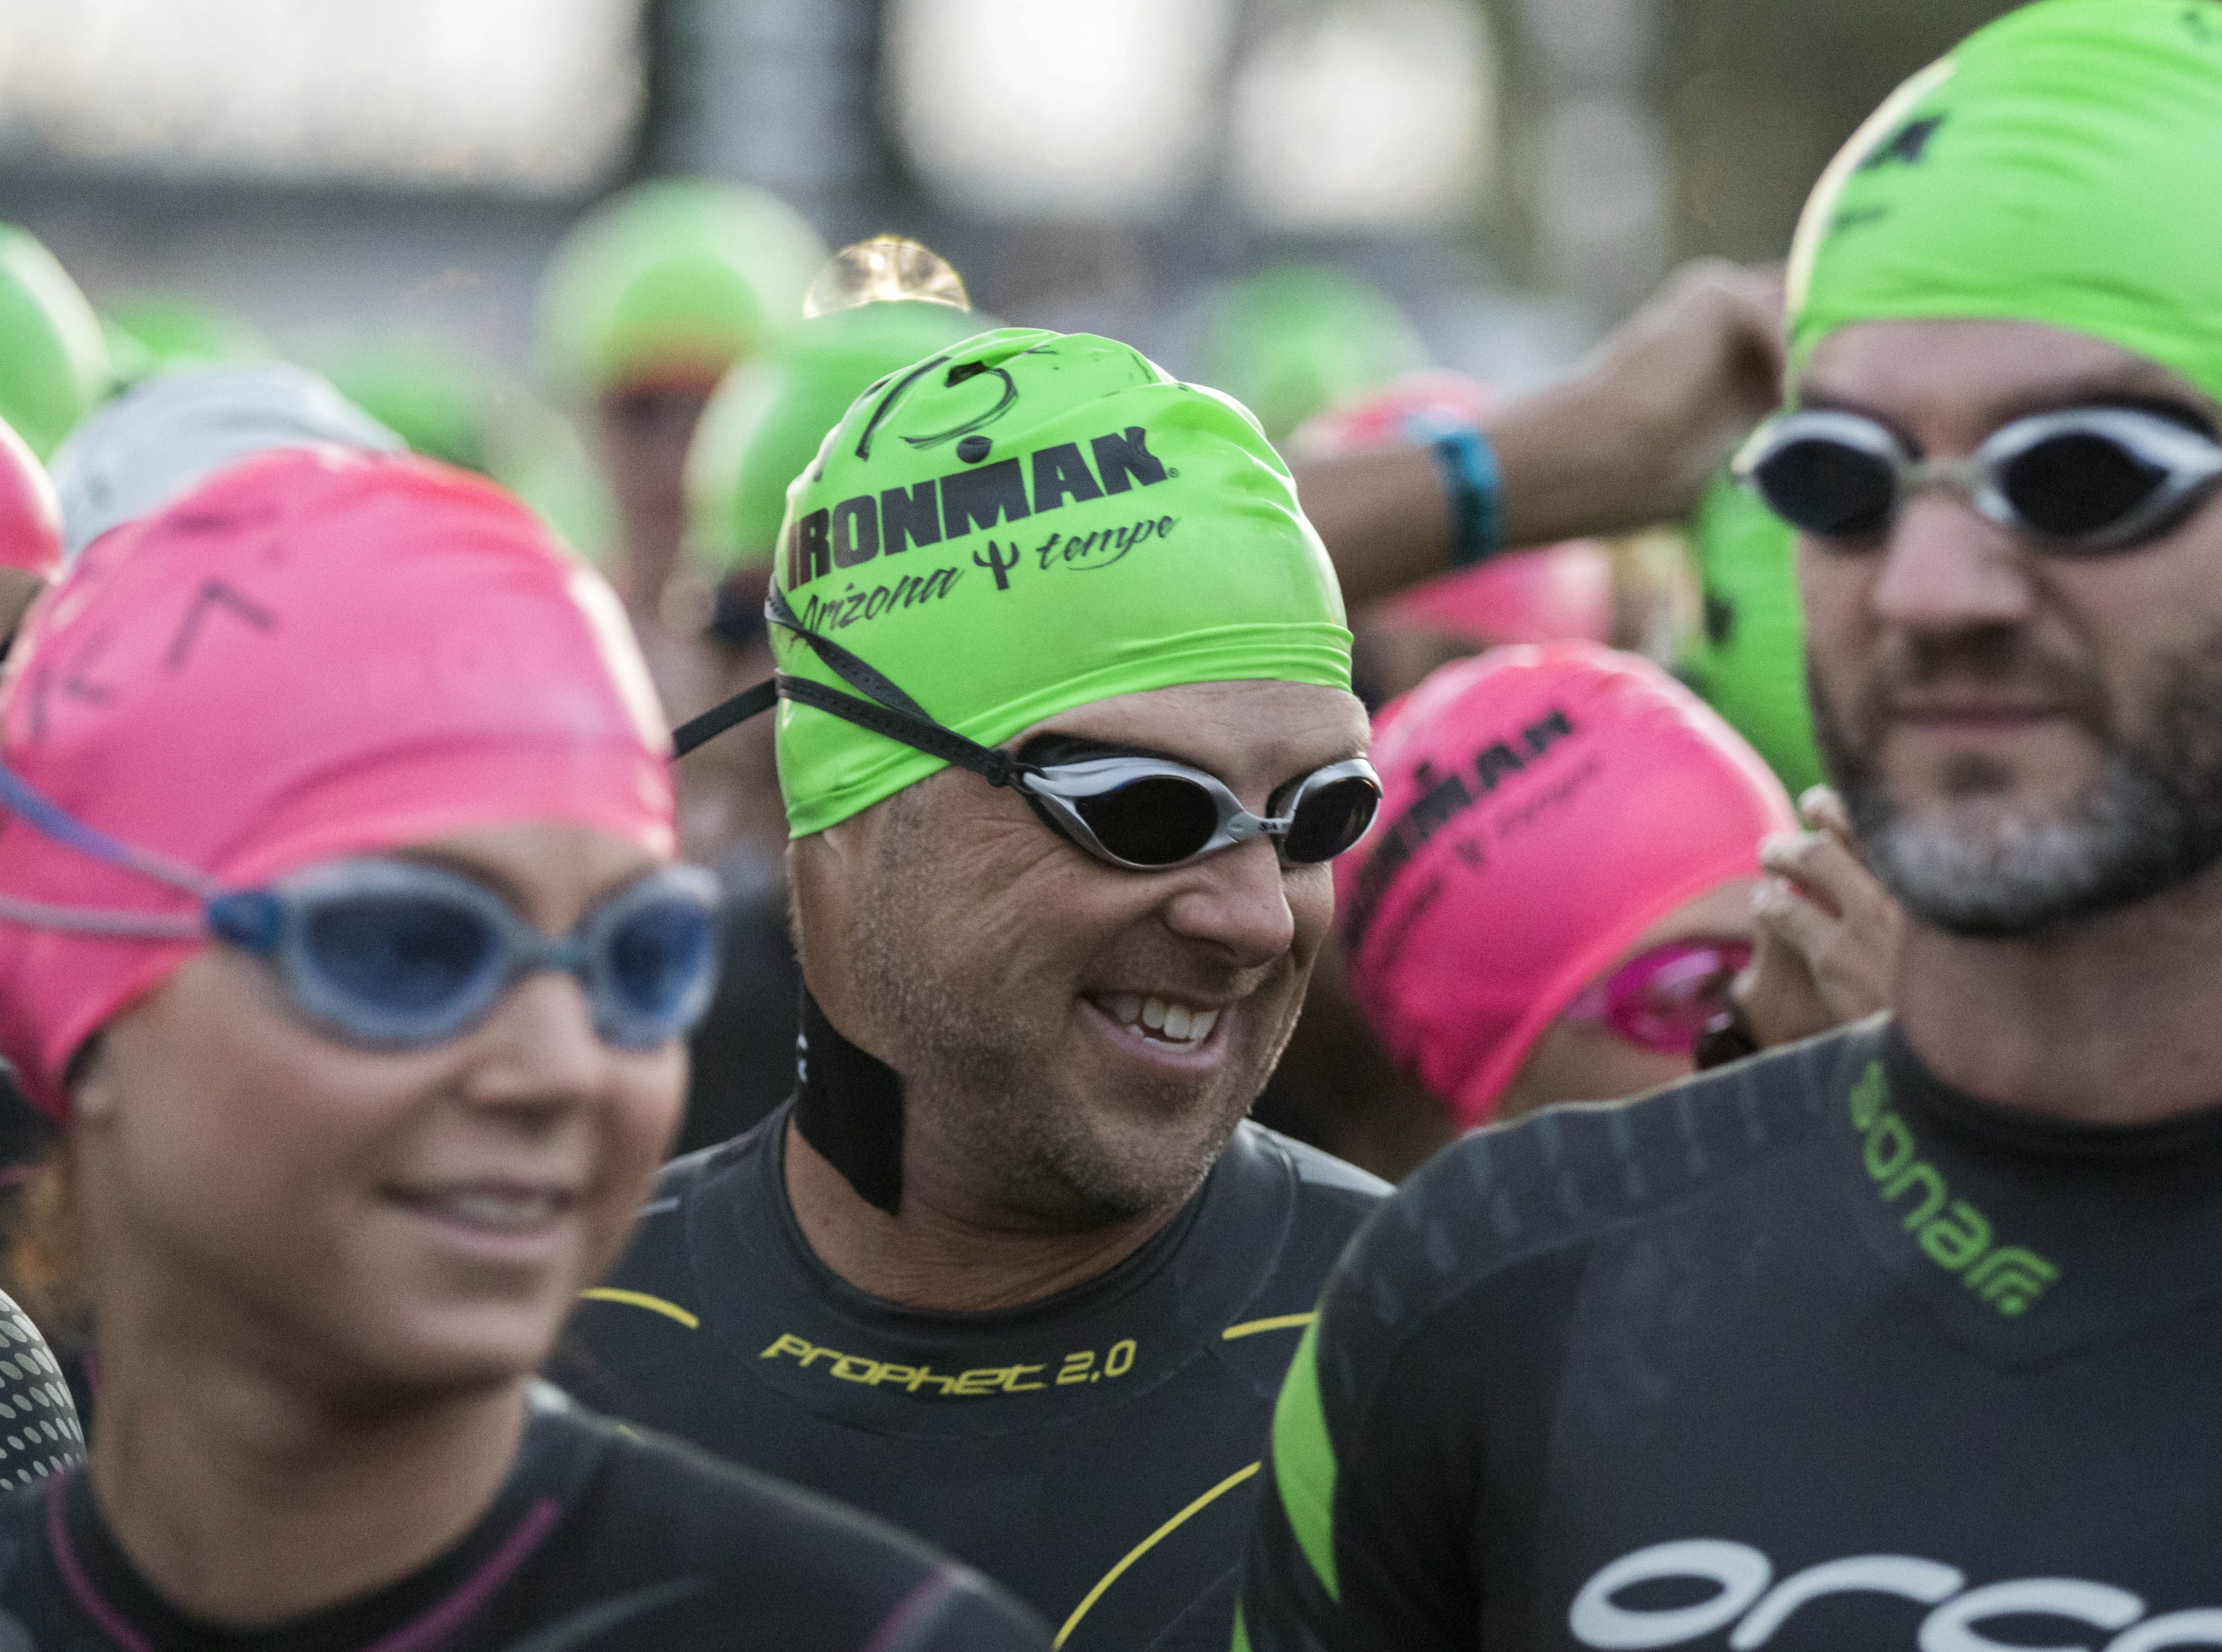 Competitors are all smiles as they start their swim during the Tempe Ironman at Tempe Town Lake Nov.18, 2018.